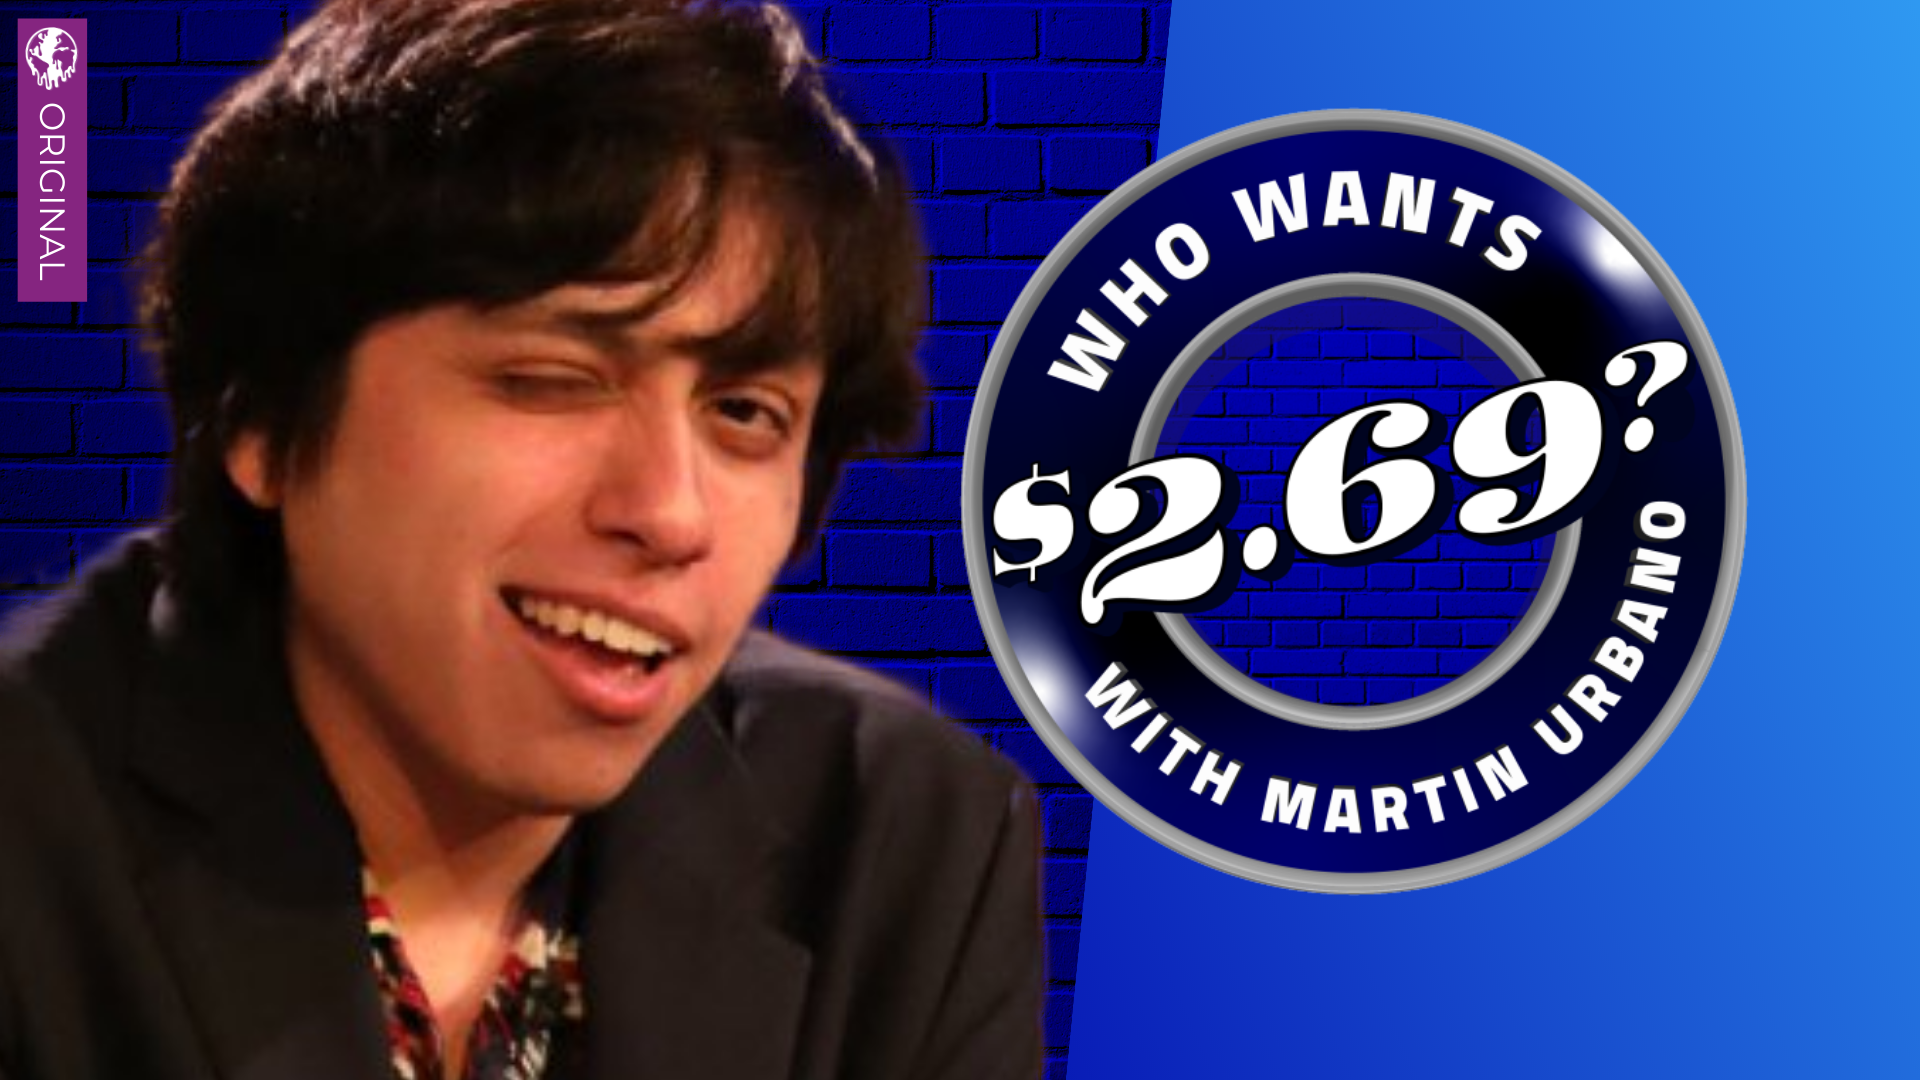 Who Wants $2.69 BRANDED.png